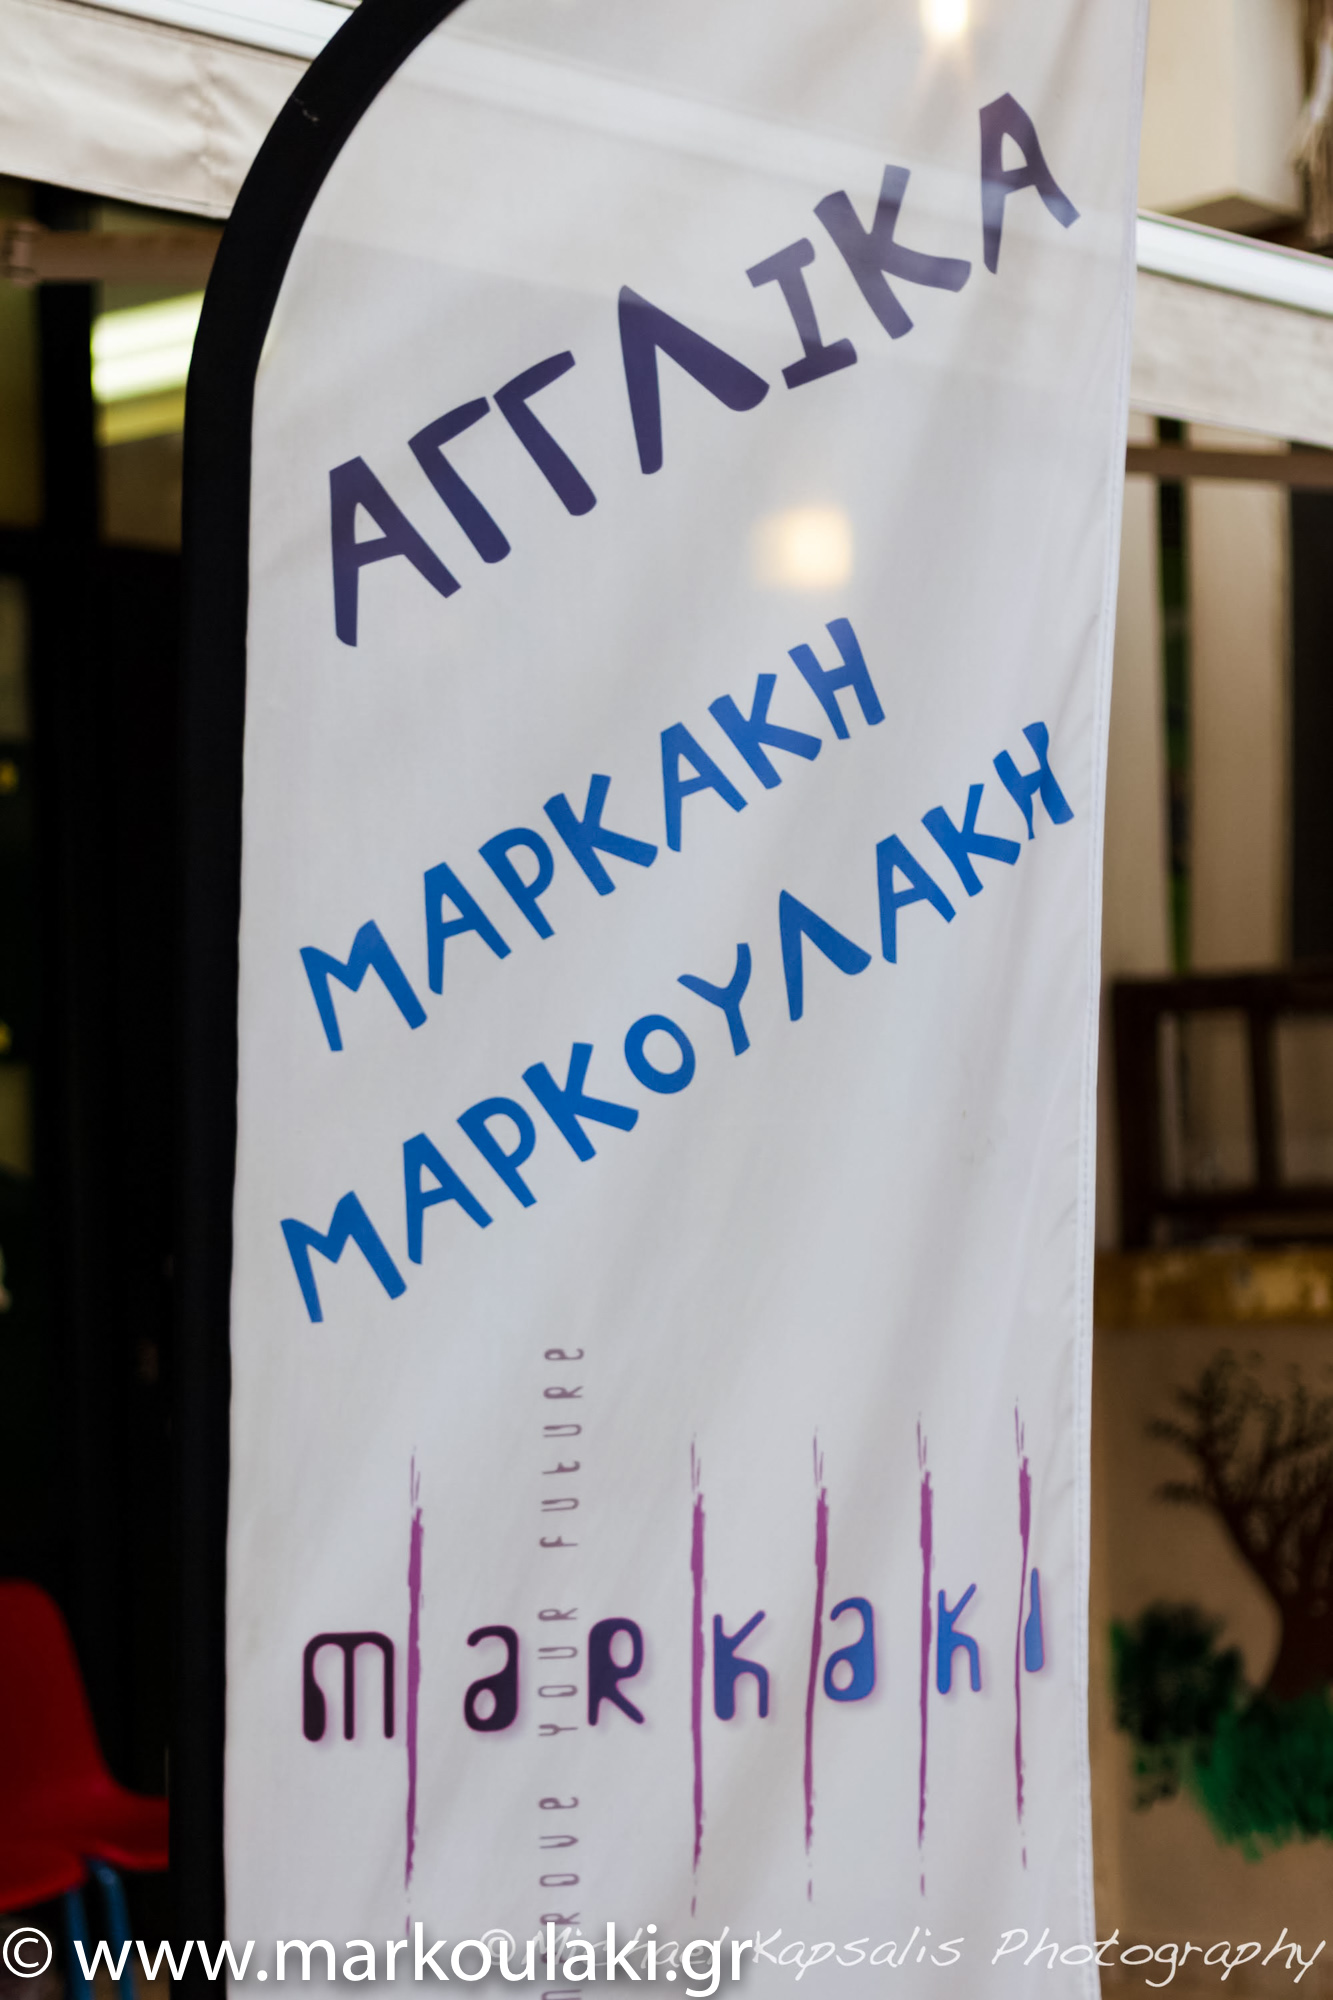 https://markoulaki.gr/wp-content/uploads/2020/08/IMG_9346.jpg